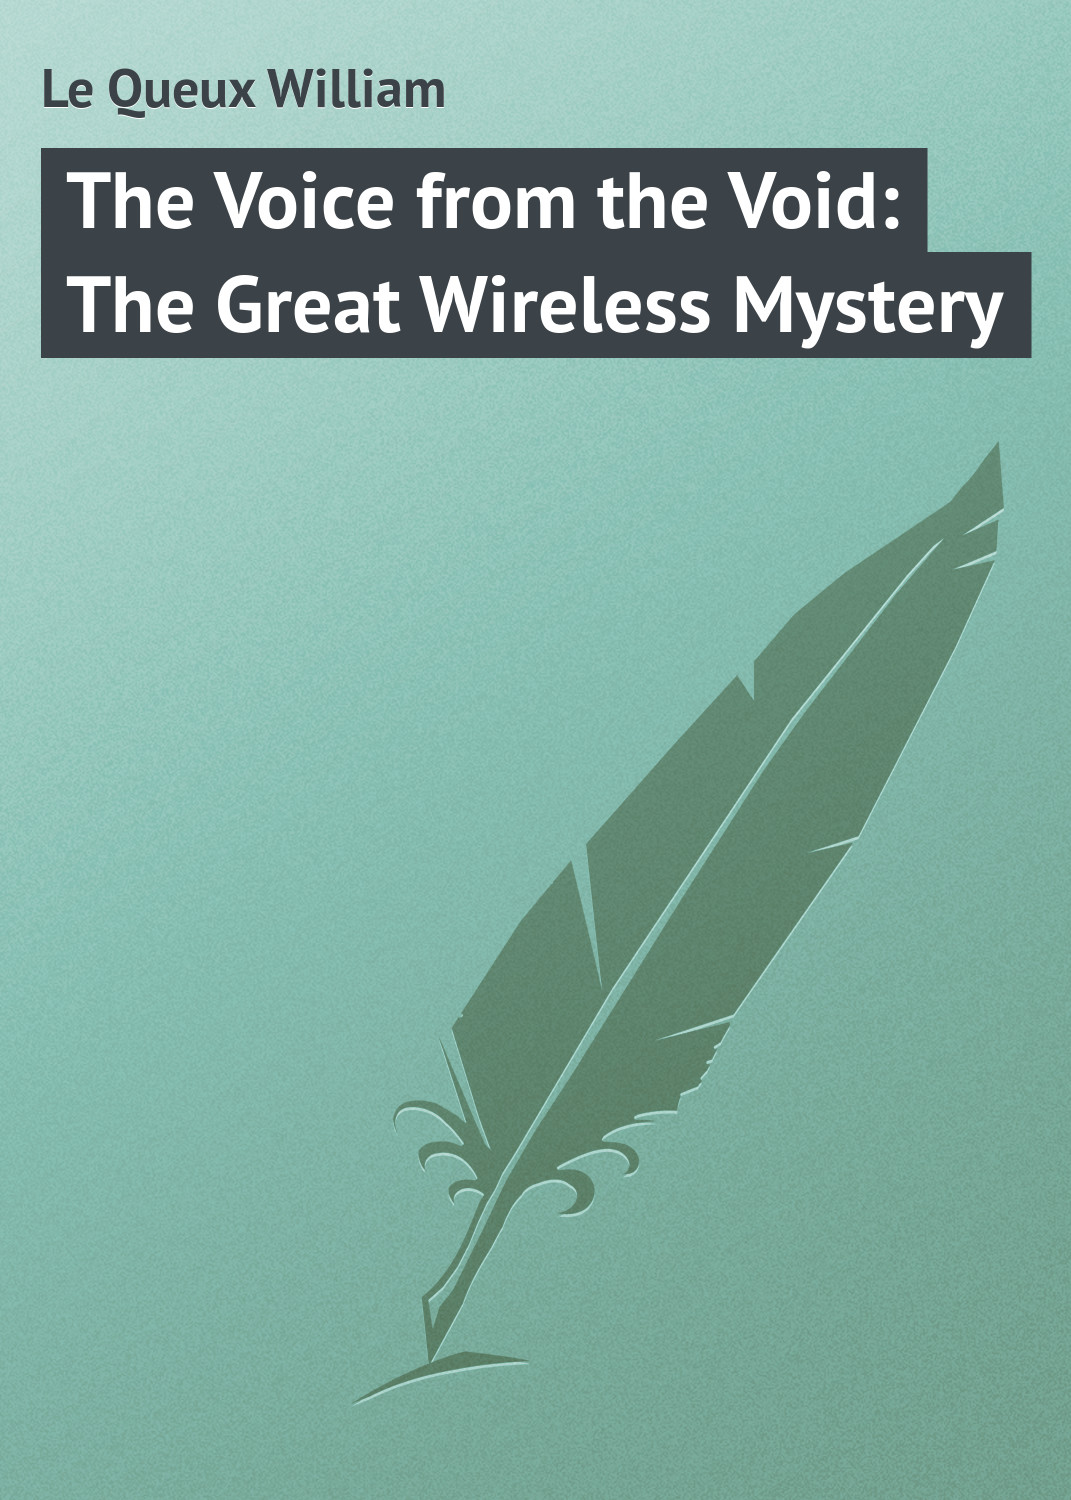 Le Queux William The Voice from the Void: The Great Wireless Mystery anna b bensel a voice from the silence